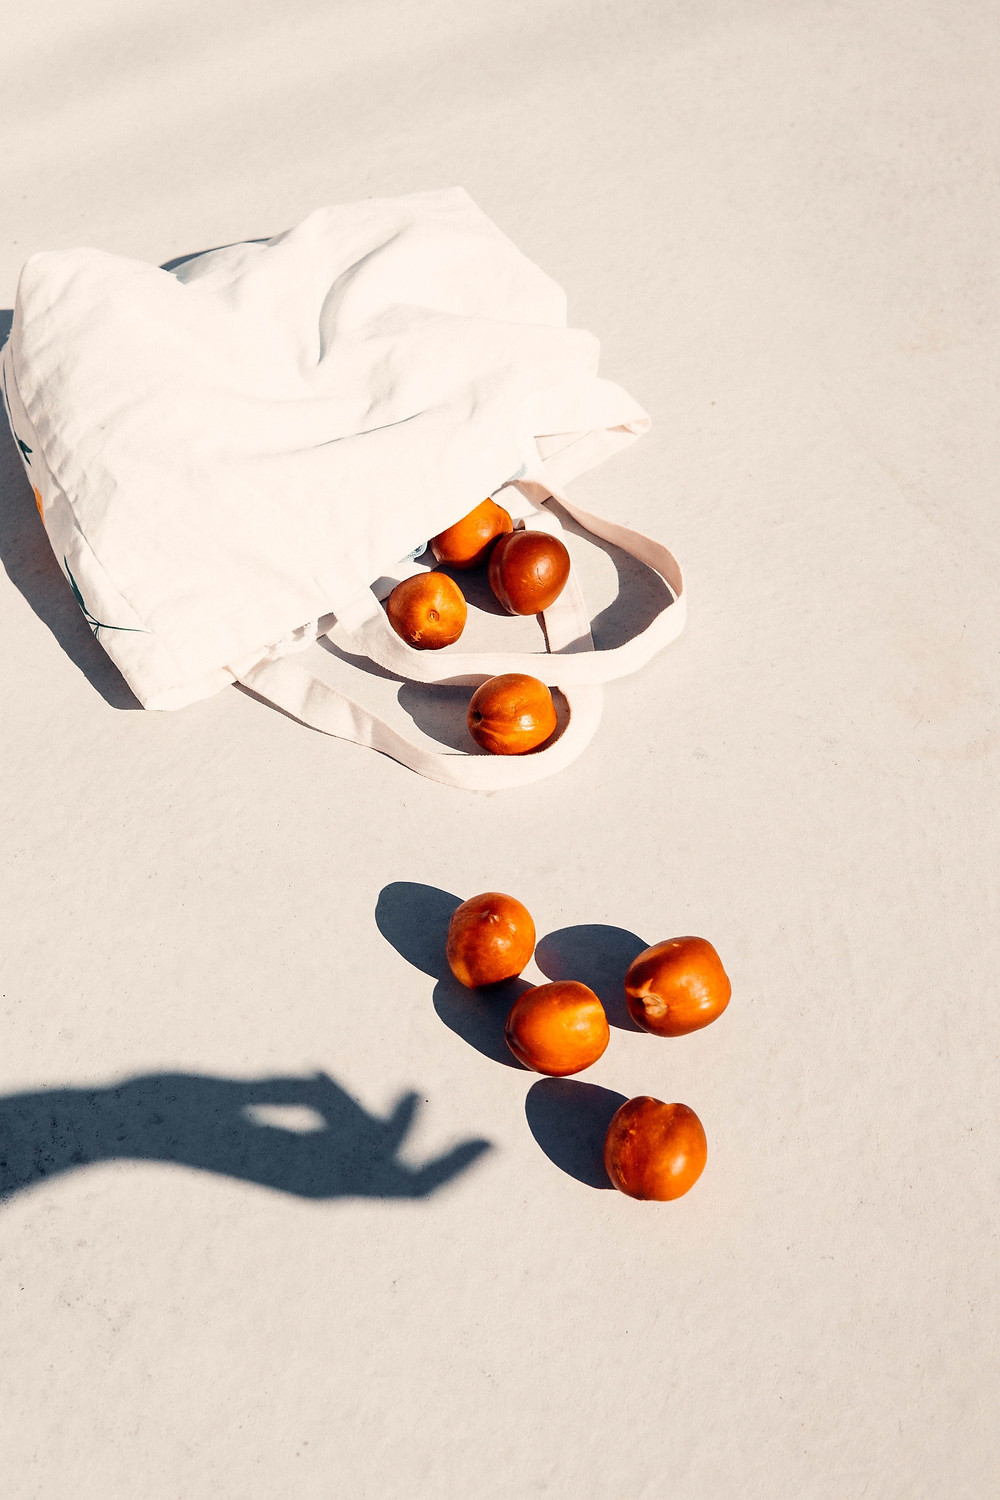 oranges falling out of a canvas bag to the ground with a shadow hand shown reaching out to them as an example on how creatives can use engaging images to use social media